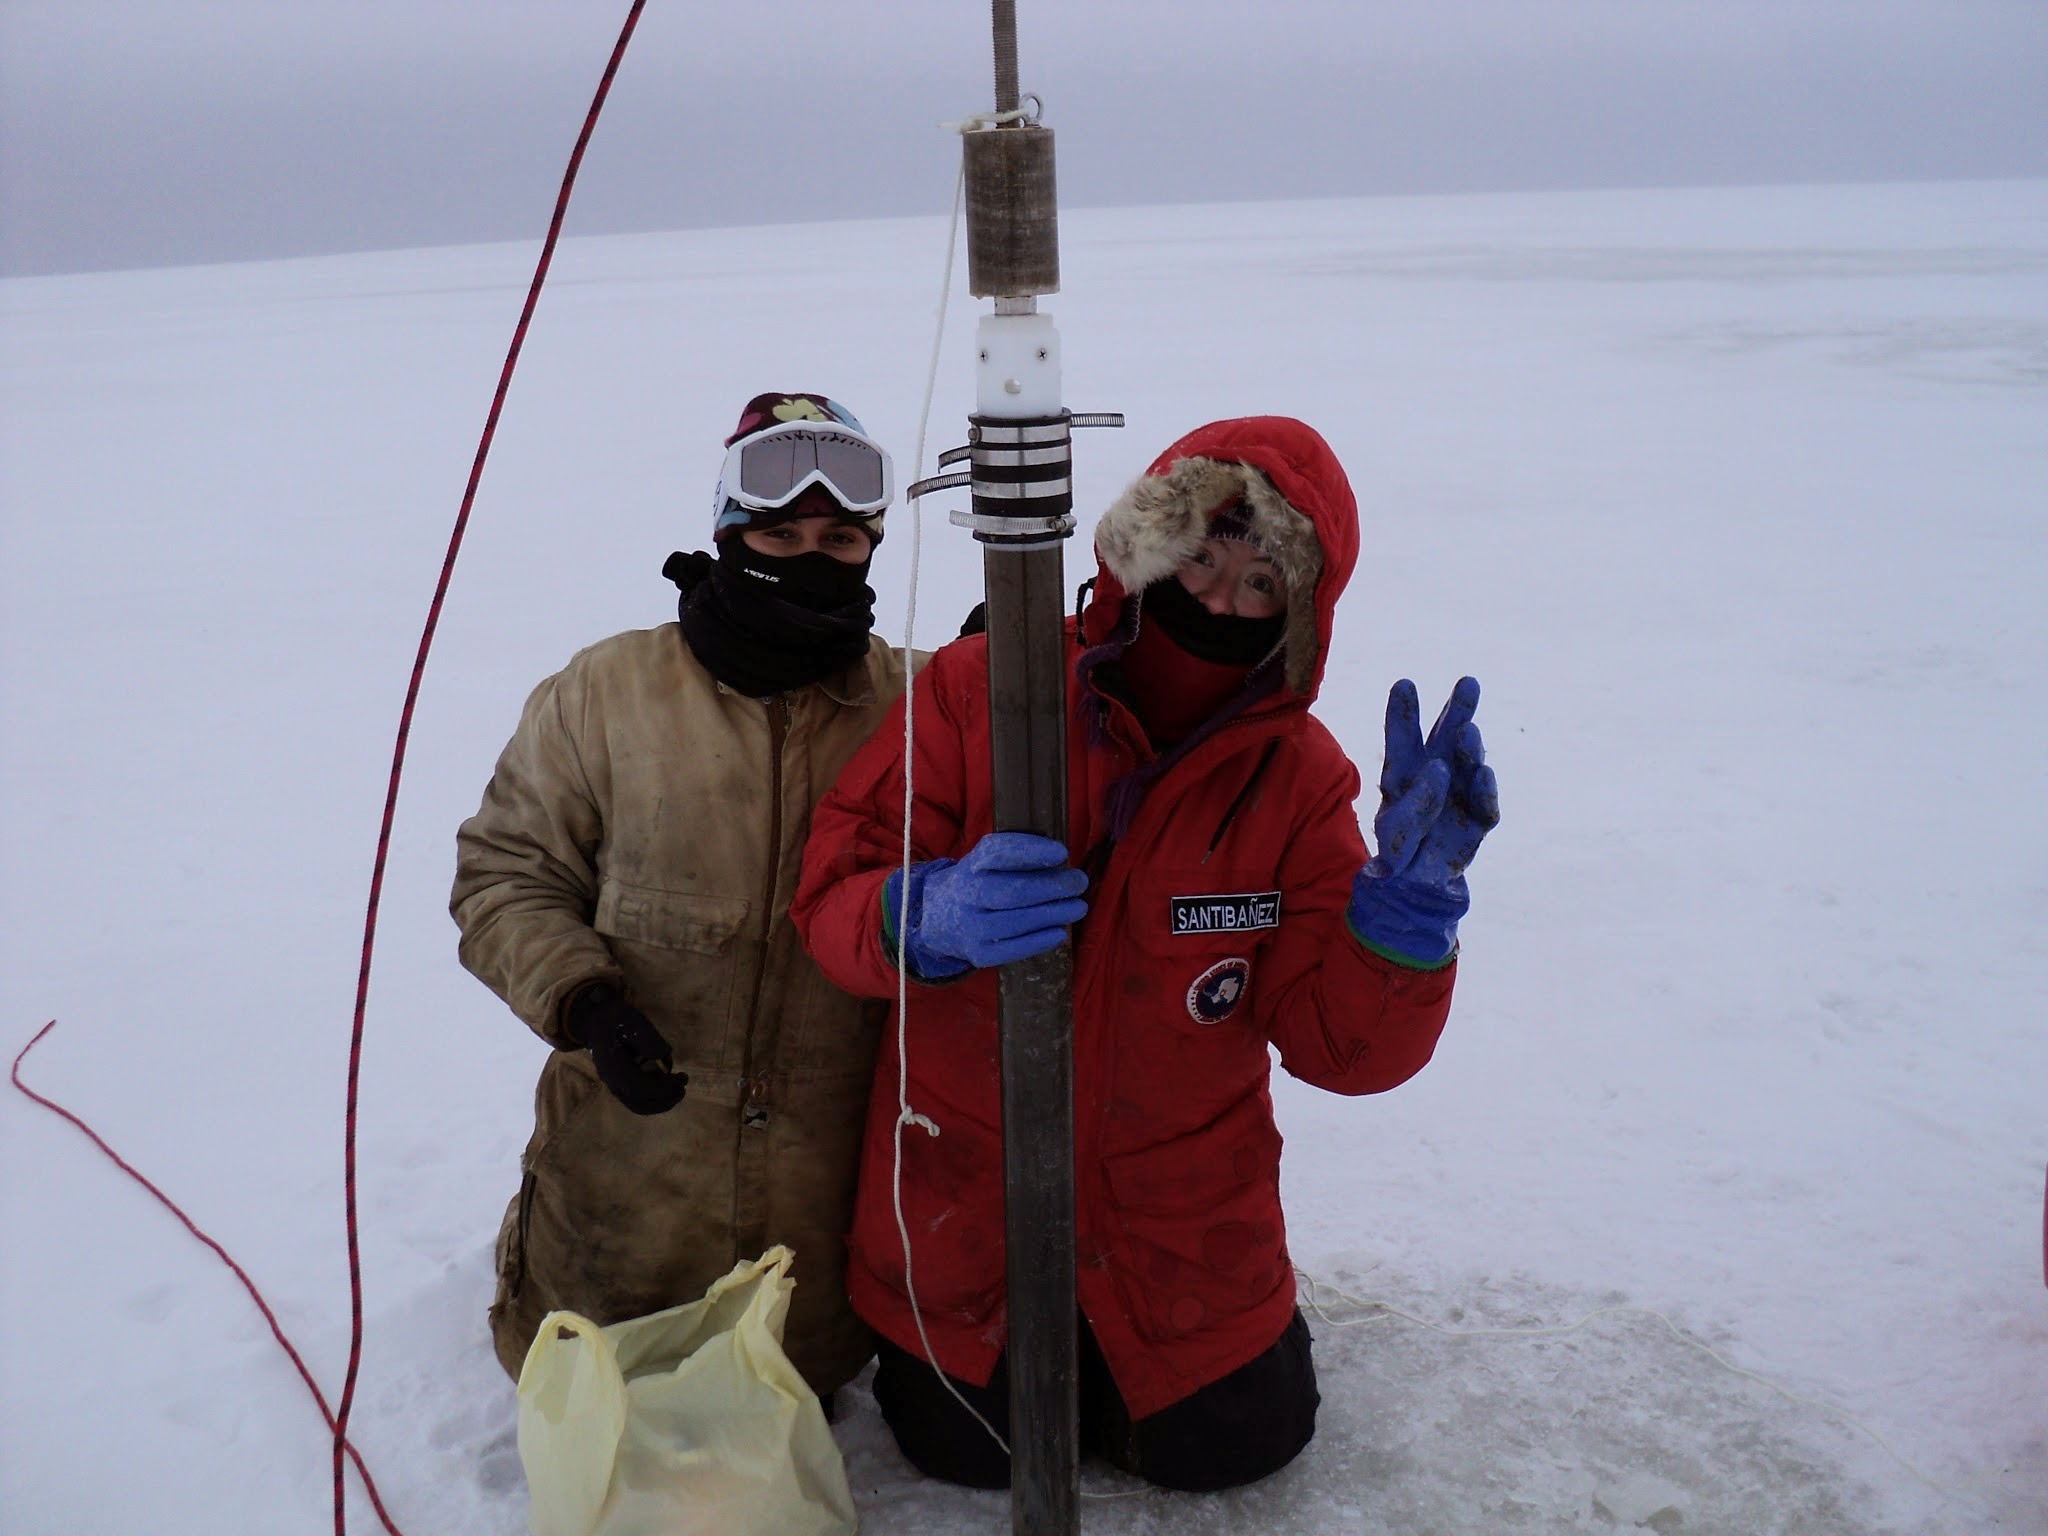 PhD students Paula Matheus-Carnevali (University of Nevada) and Pamela Santibanez (Montana State University) hold a sediment core from one of the lakes near Barrow, AK, October, 2010